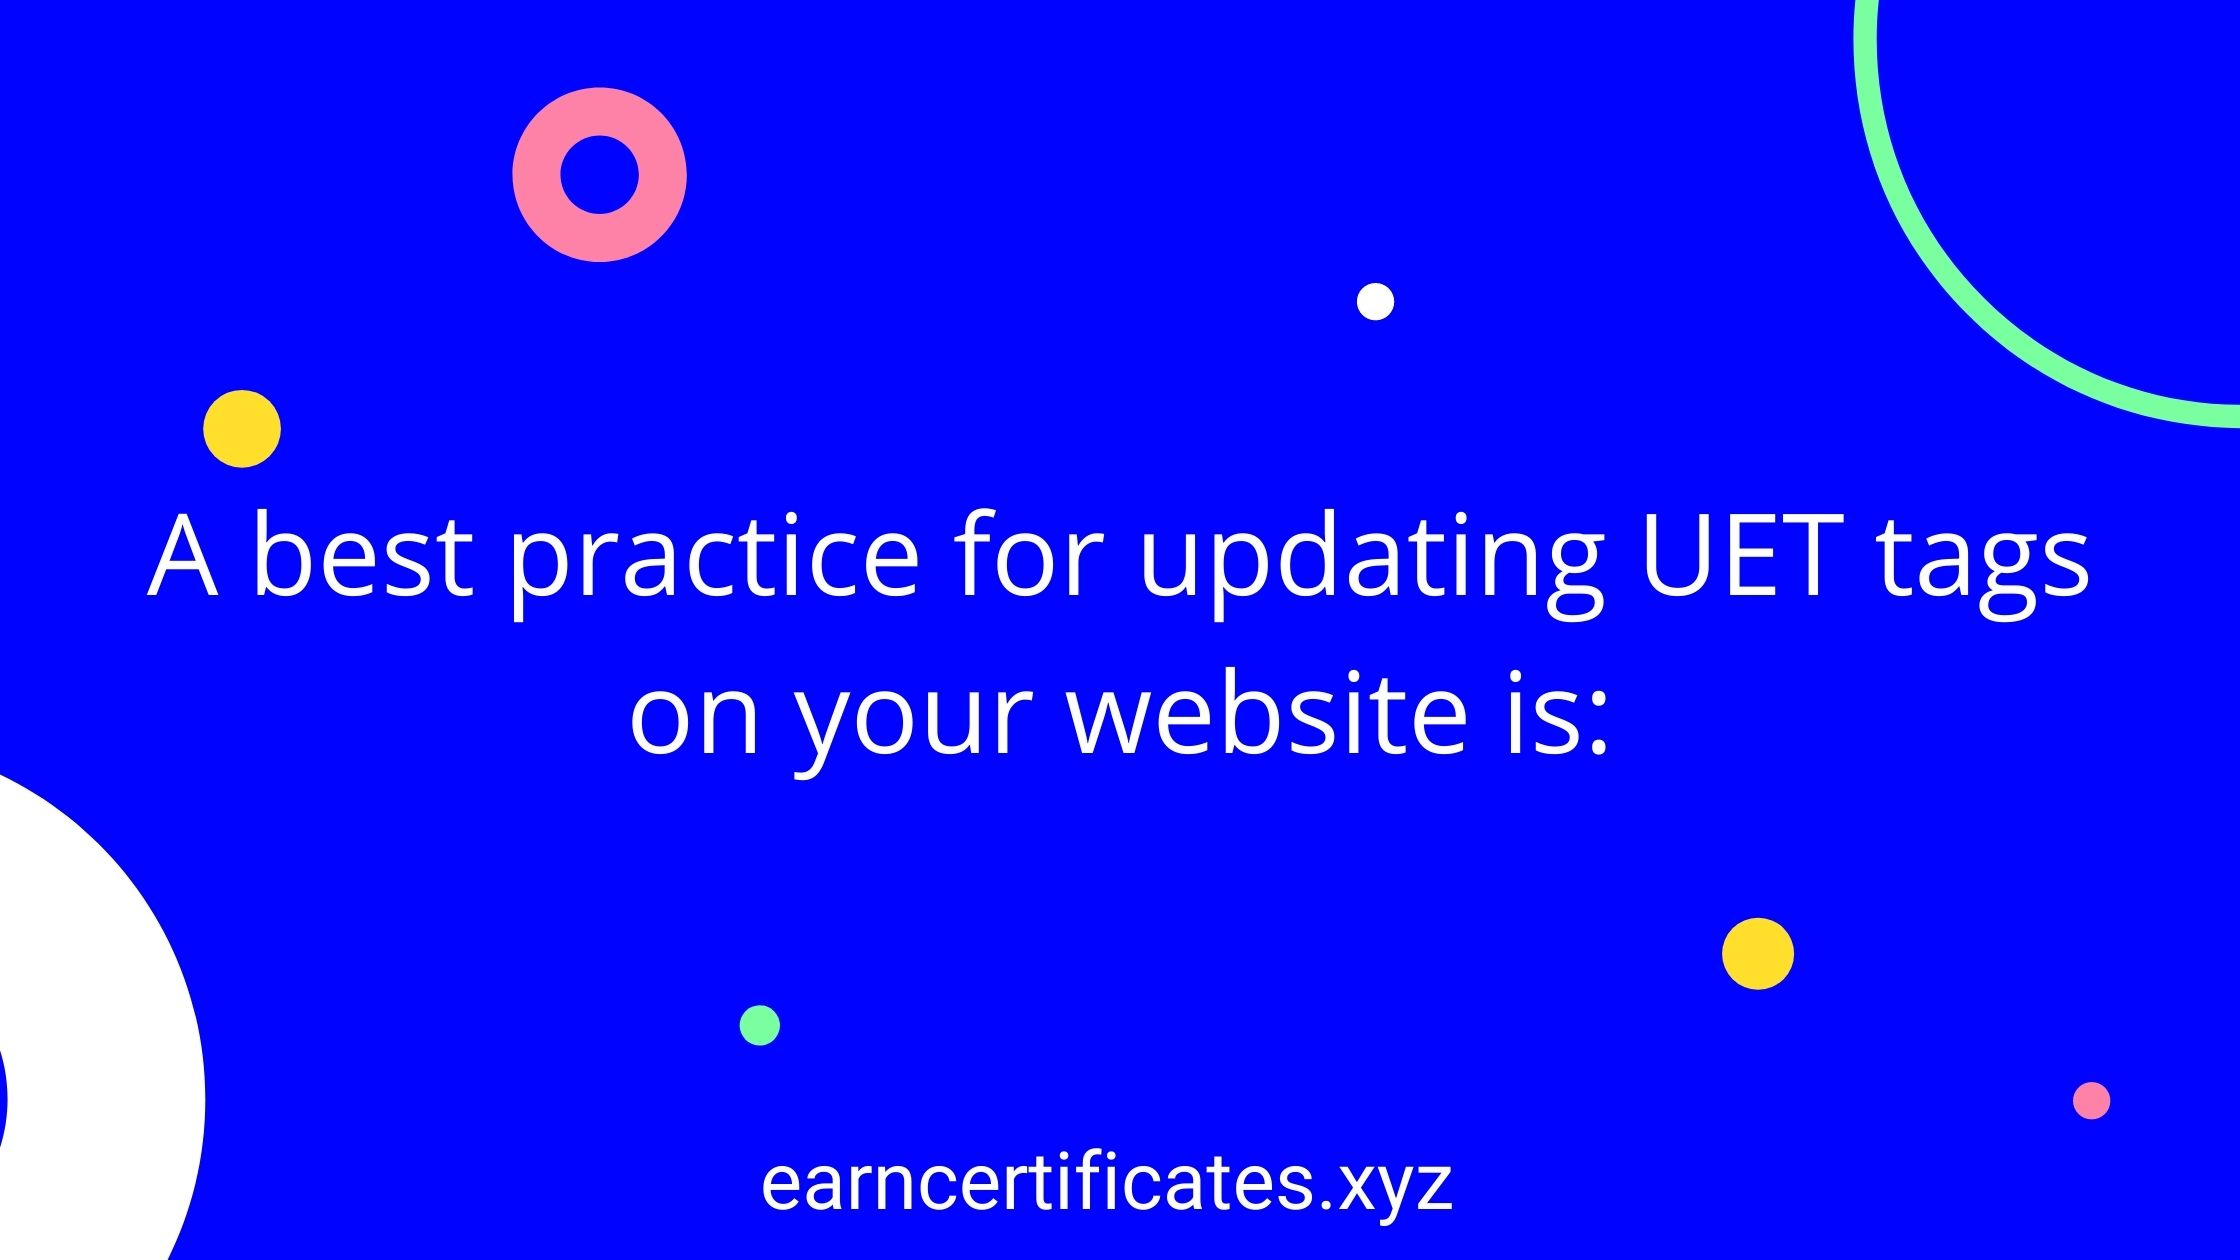 A best practice for updating UET tags on your website is: